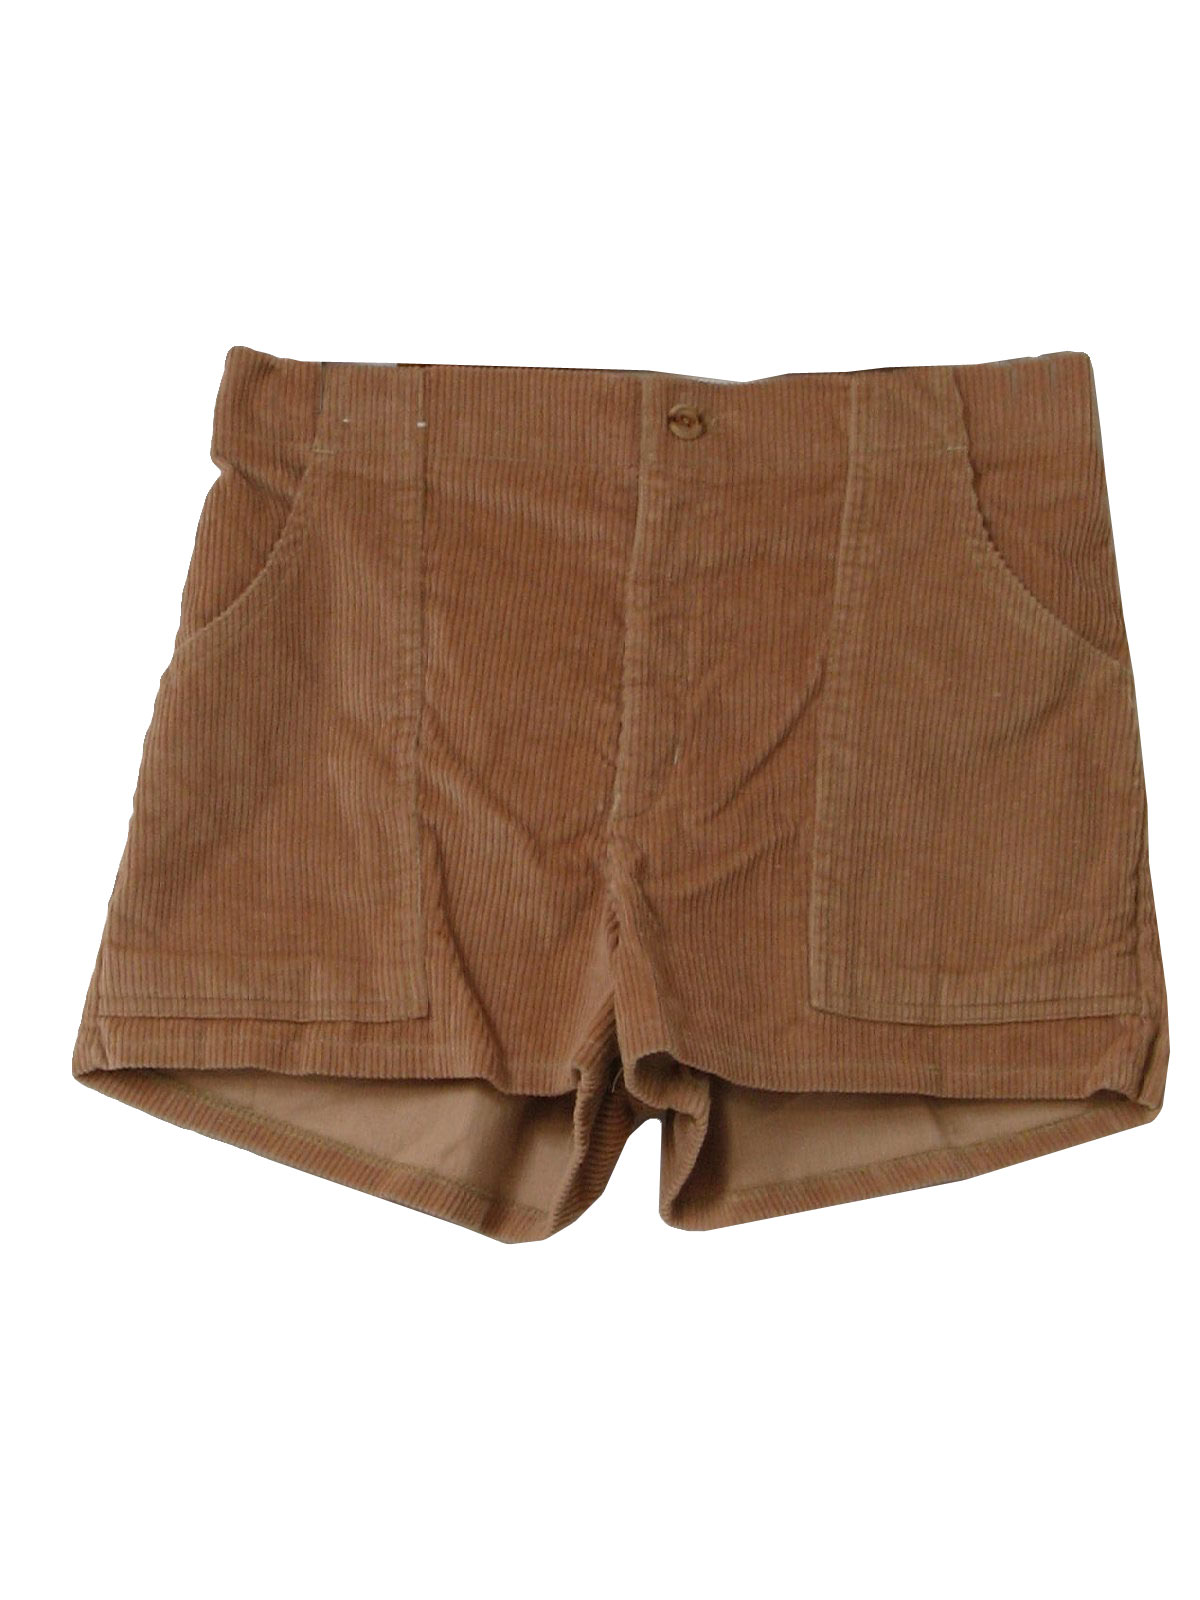 Seventies PGE Shorts: 70s -PGE- Mens creamy tan polyester